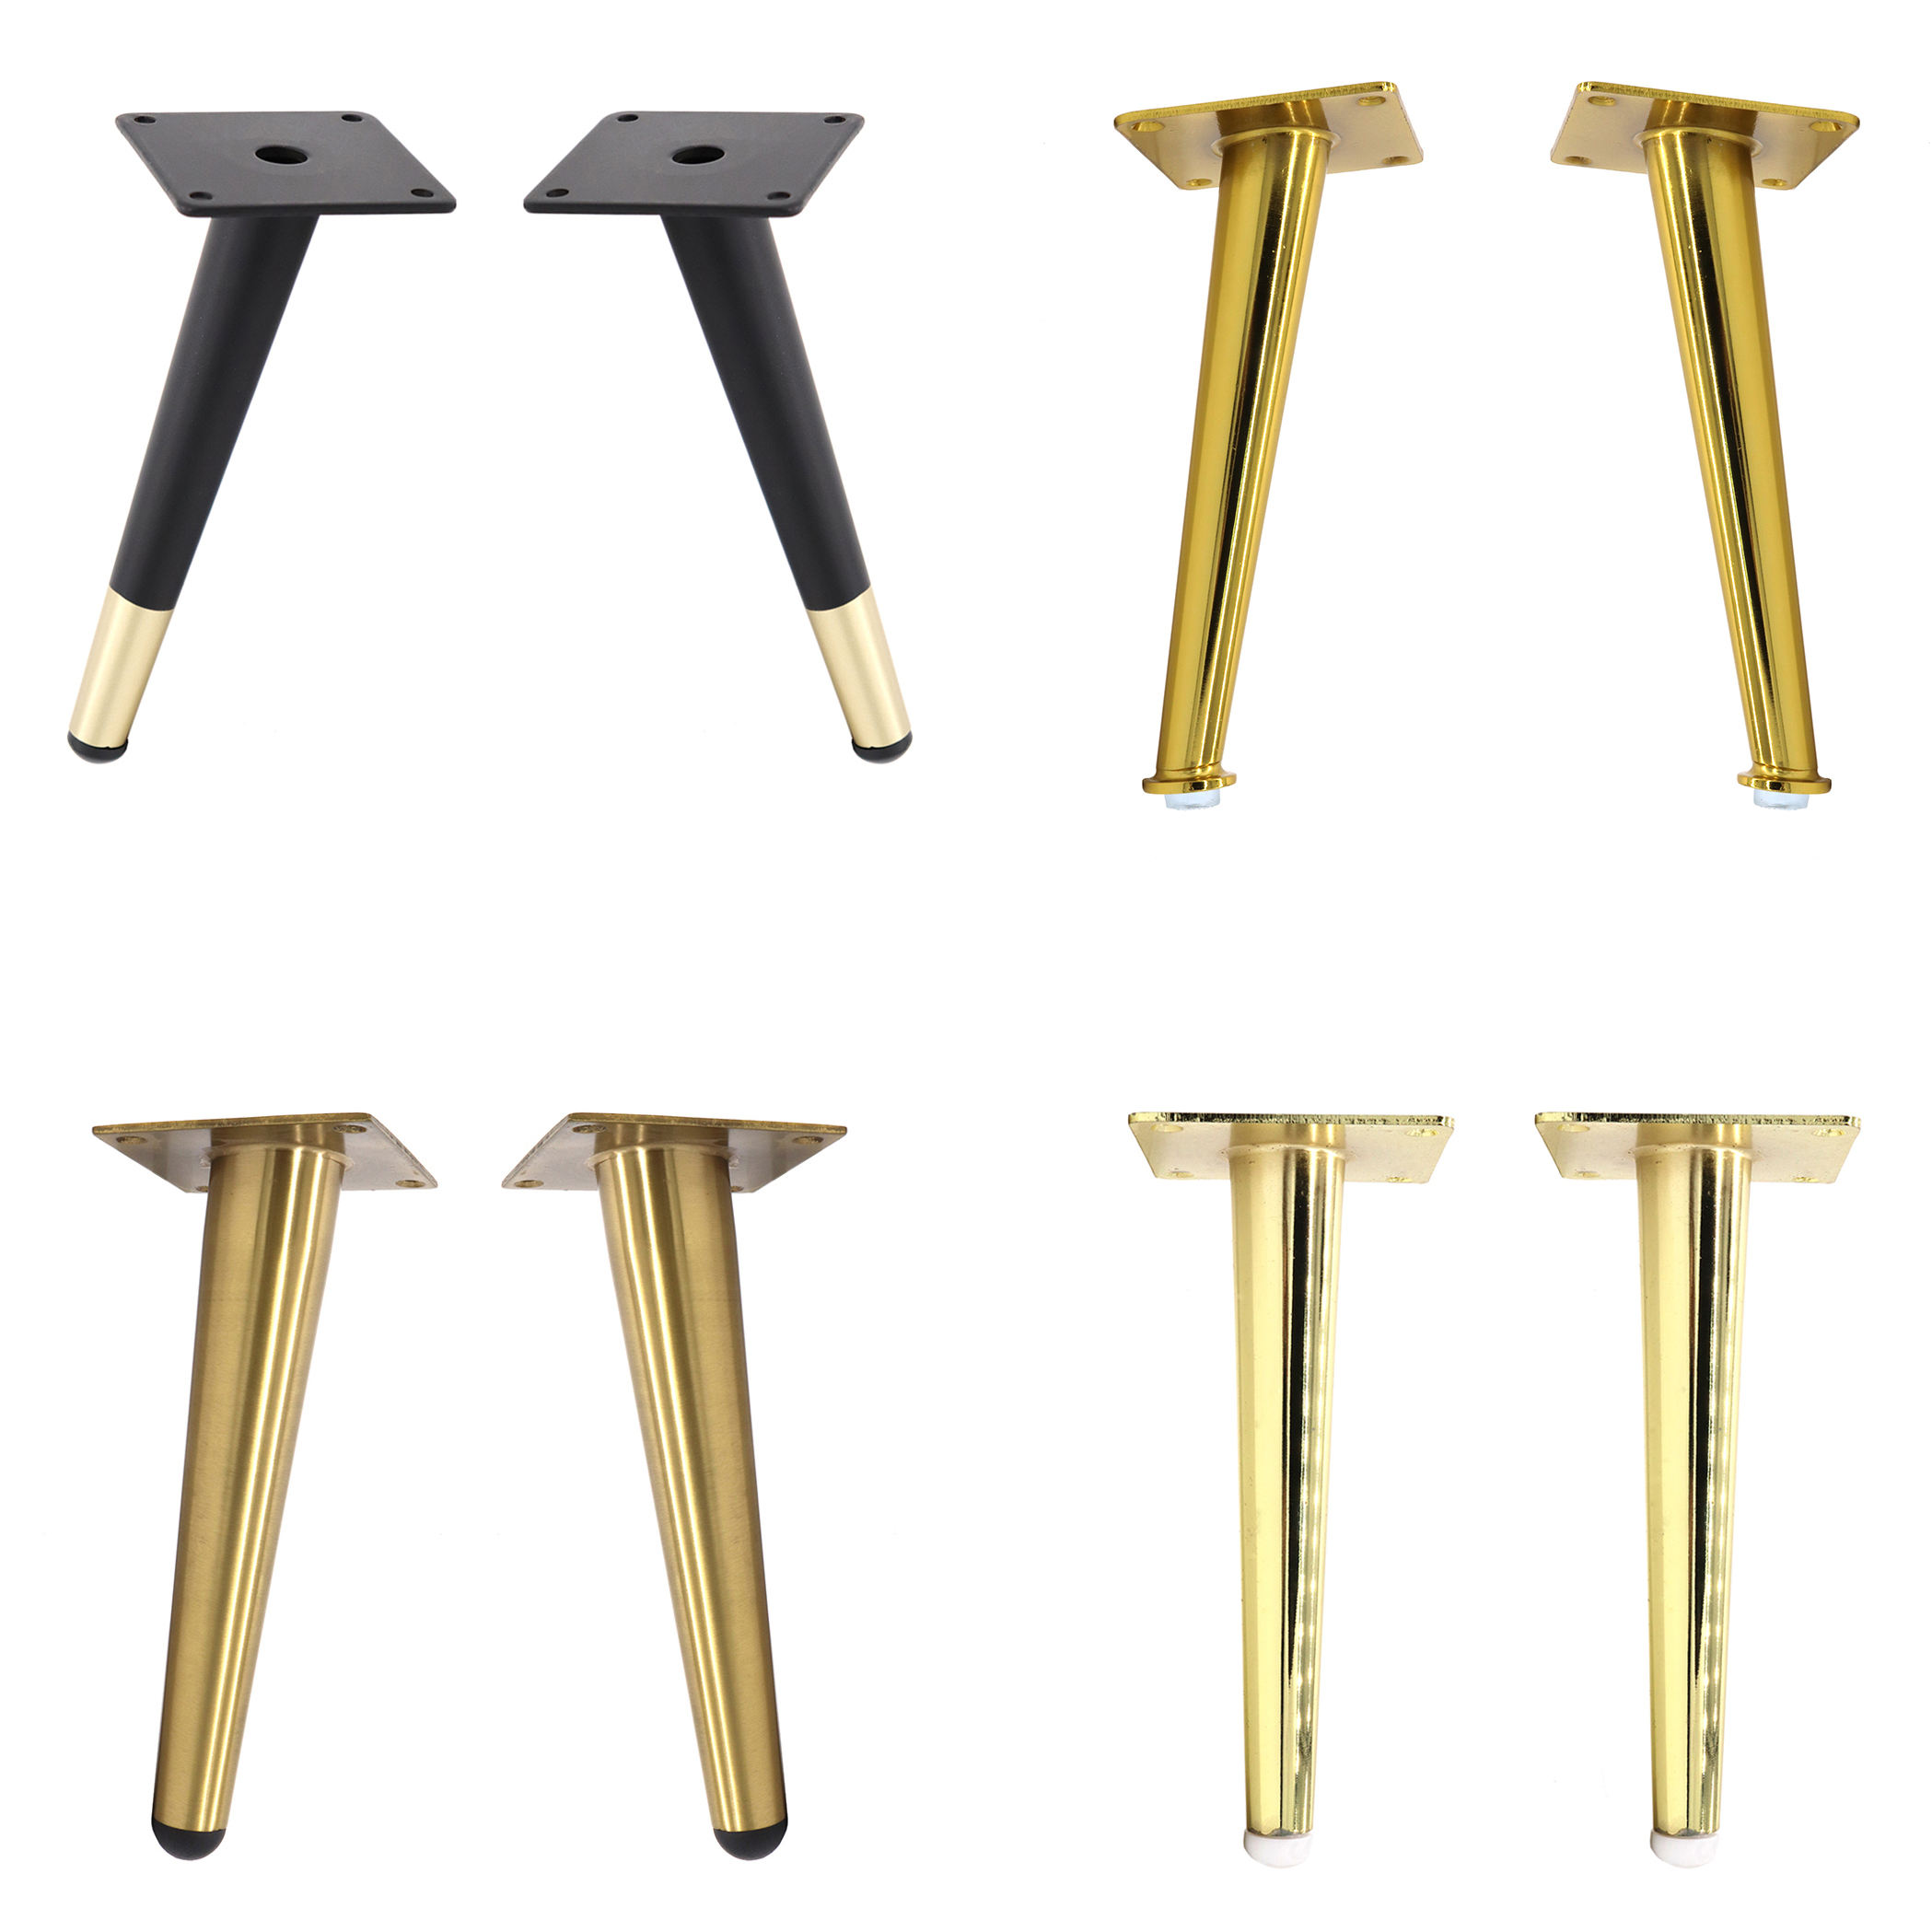 Sofa Leg 100mm - 400mm Iron Tapered Decoration Support Gold Brass Steel Furniture Feet BedSide Bed Chrome Cabinet Metal Sofa Leg